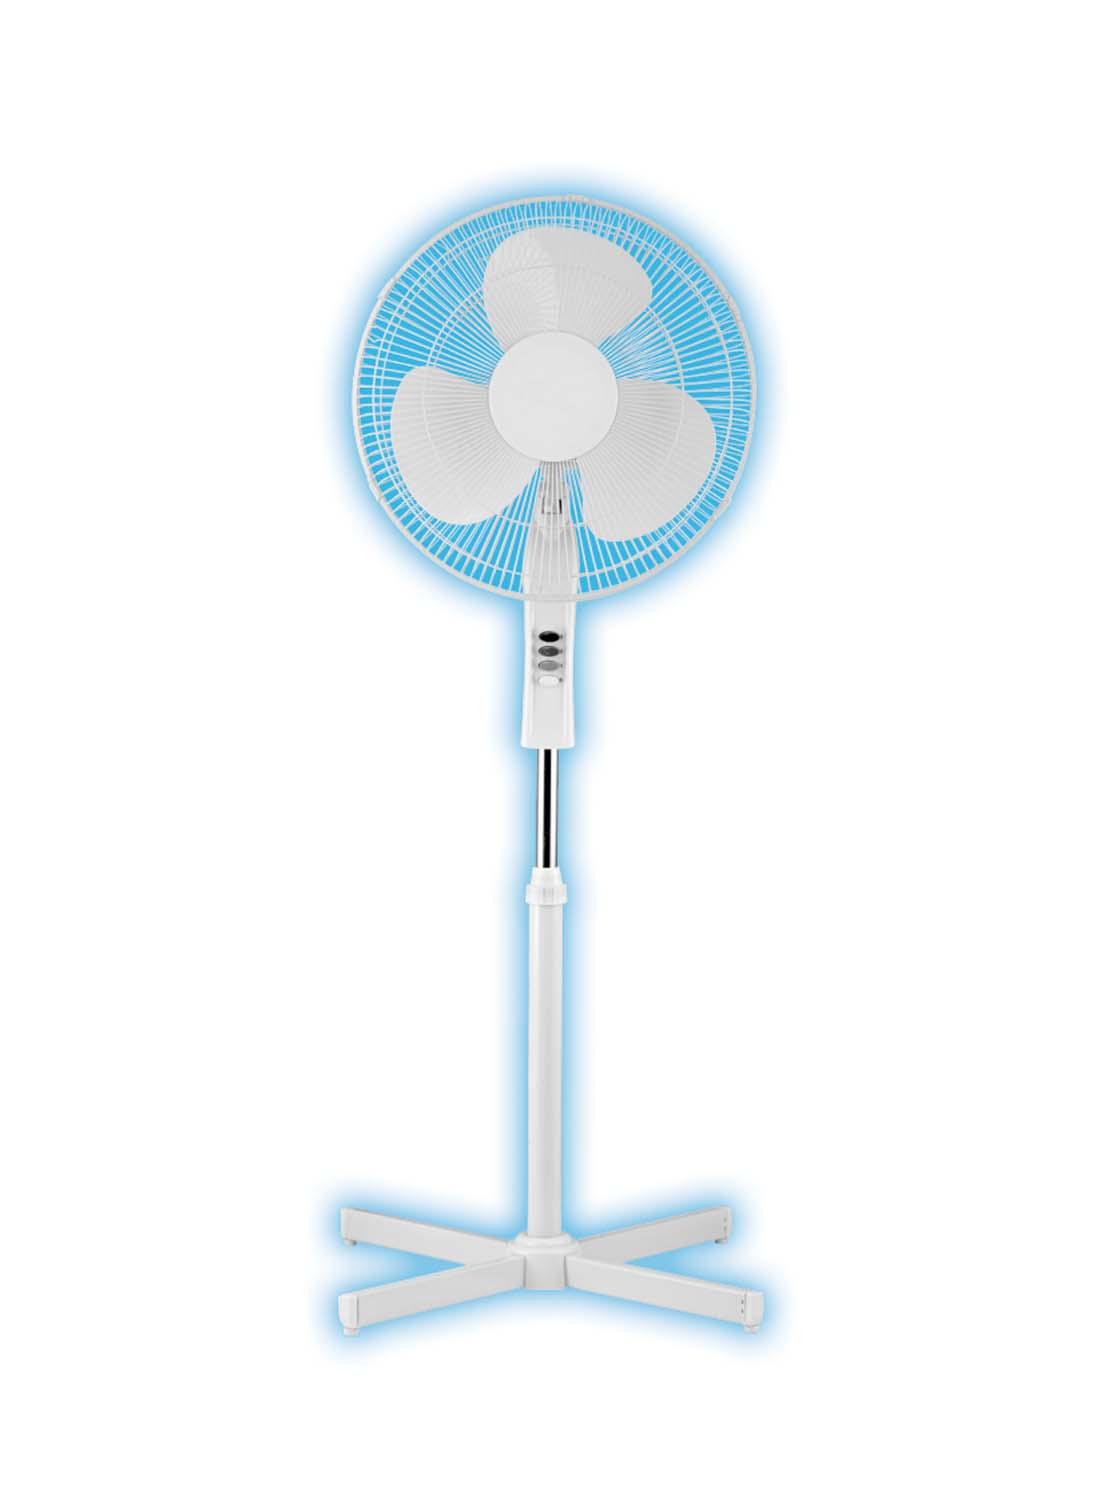 "View PEDESTAL FAN 16 INCH 3 SPEED OSCILLATING ADJUSTABLE ""ETL APPROVED"""